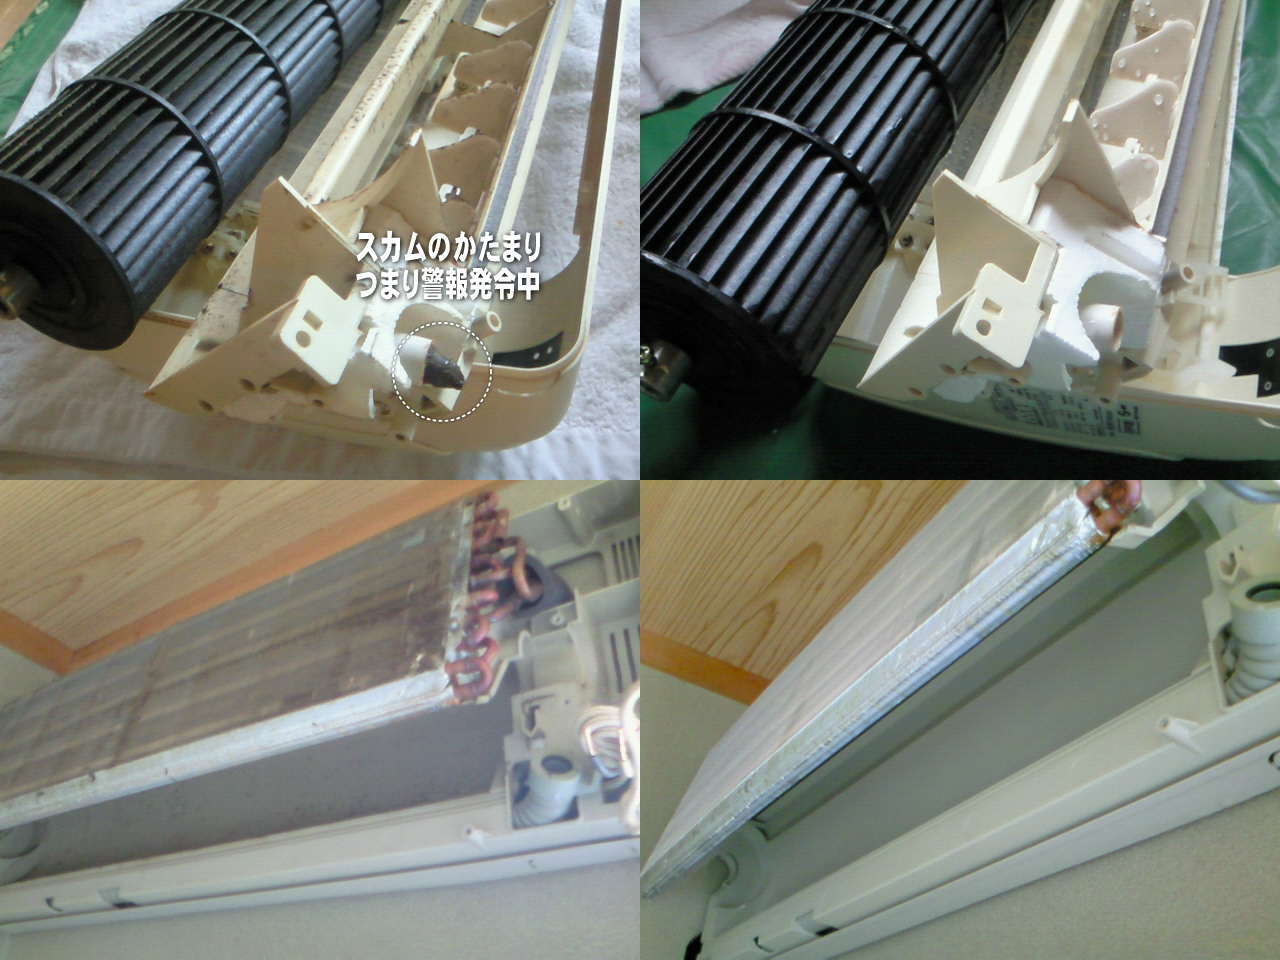 http://ajras.net/images/110614-aircon1.jpg